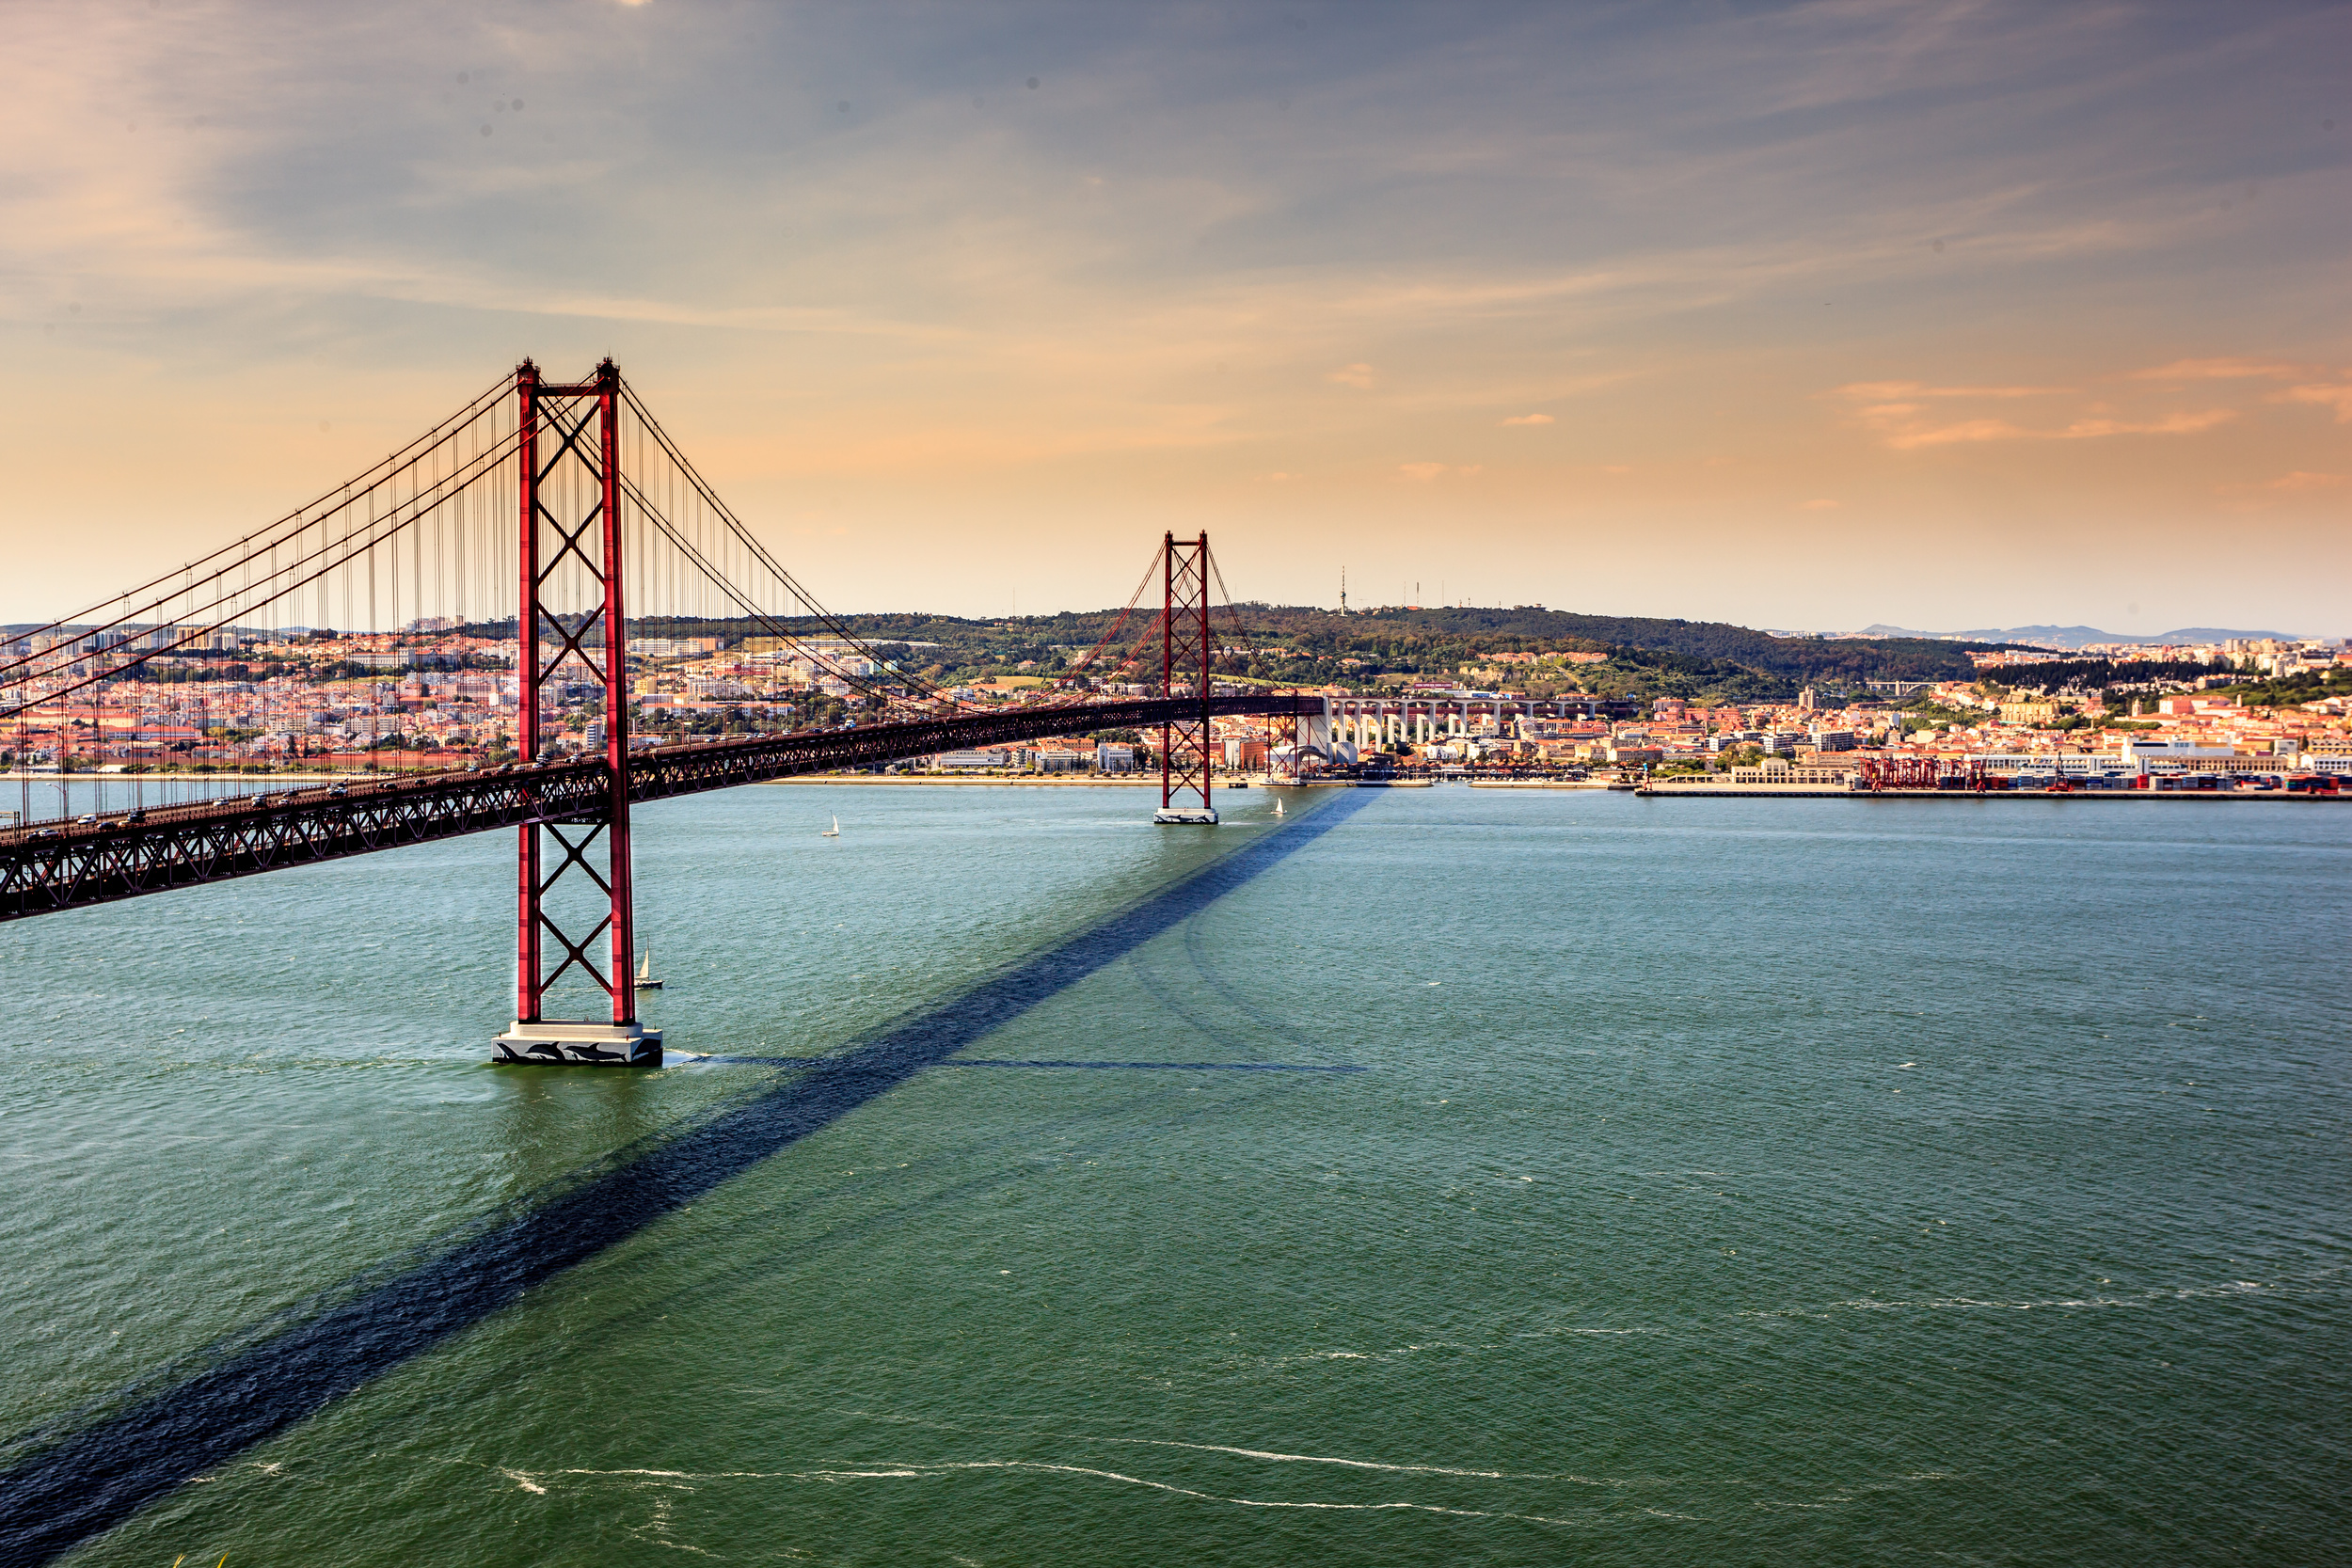 Planning a trip to Portugal? - Click on the photo to find out what we recommend.